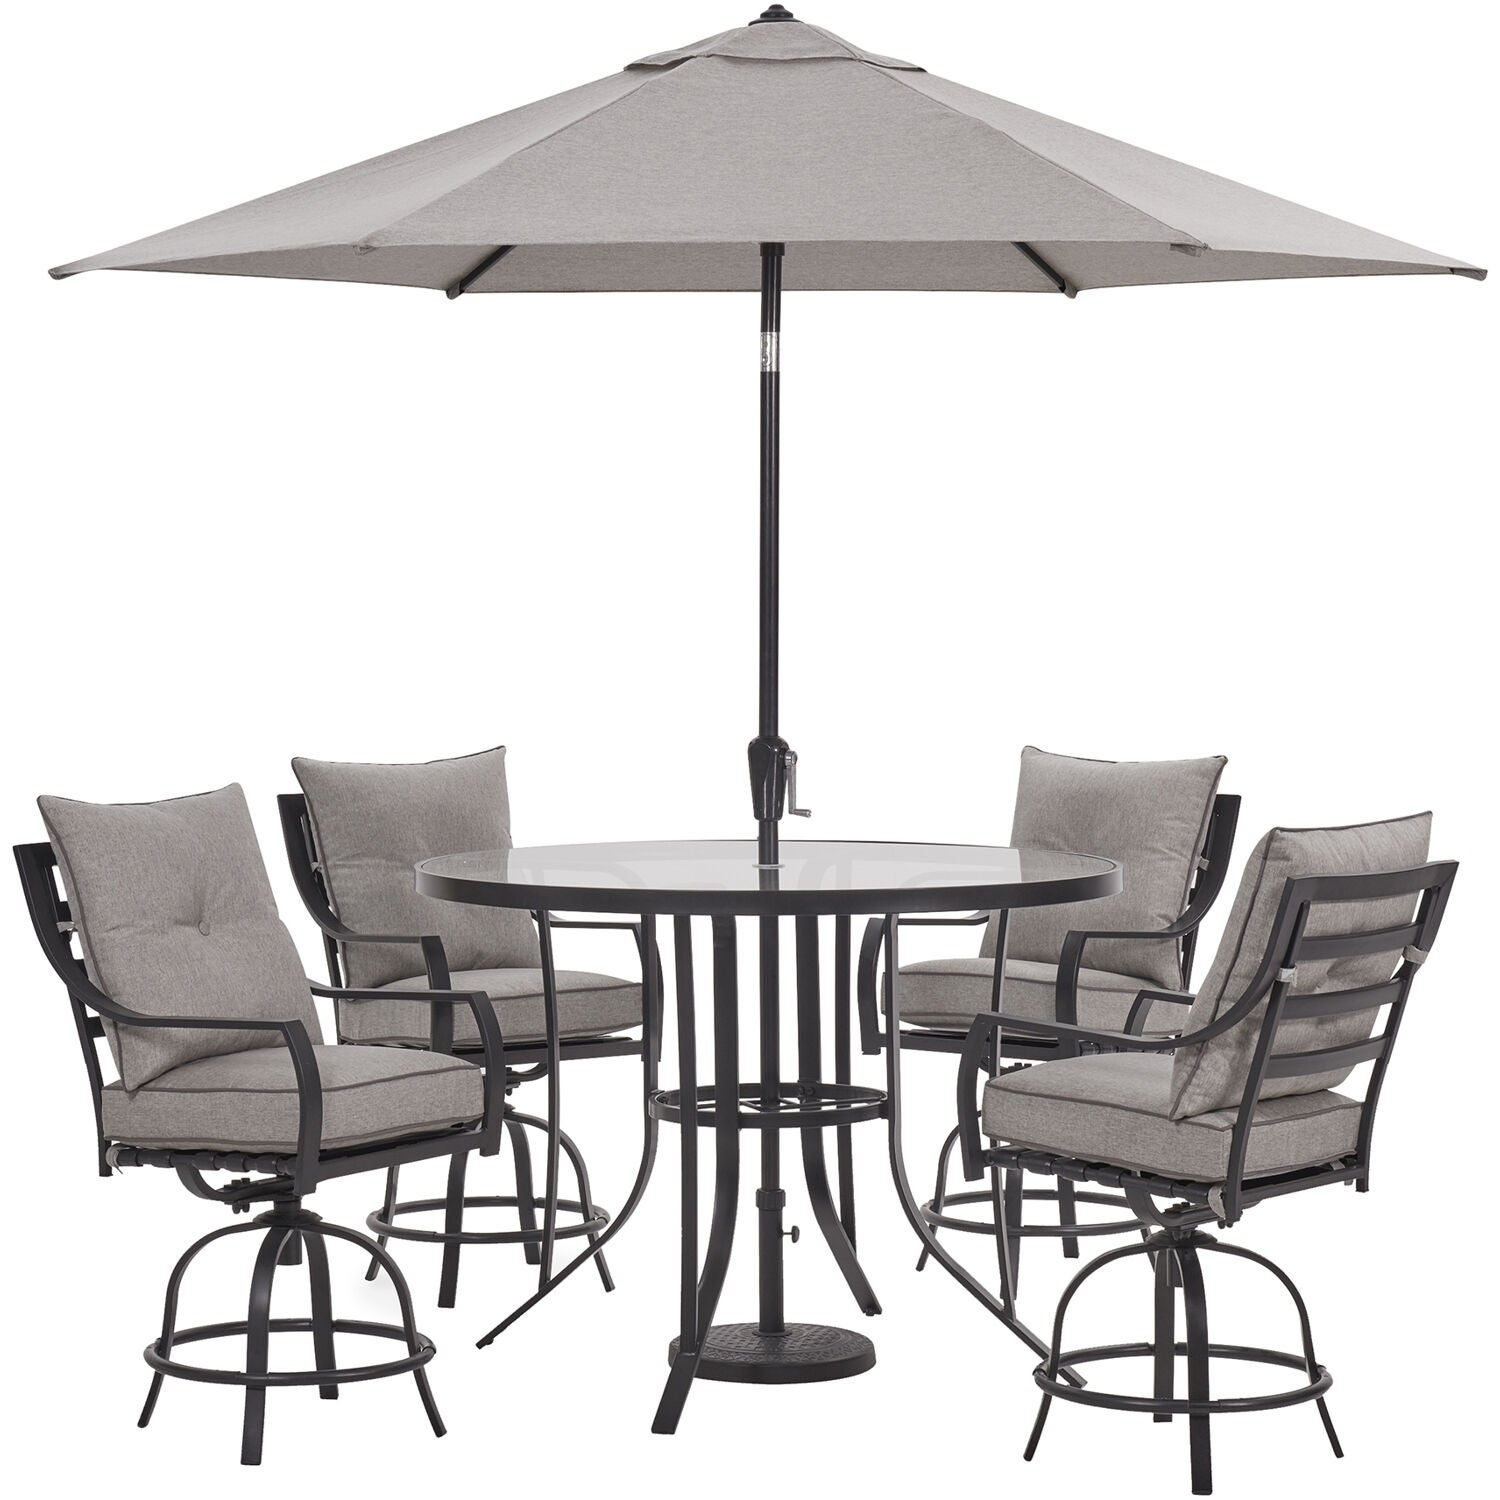 Hanover Lavallette 5 Pc Counter Height Dining Set W 4 Swivel Chairs 52 In Round Glass Table Umbrella Base